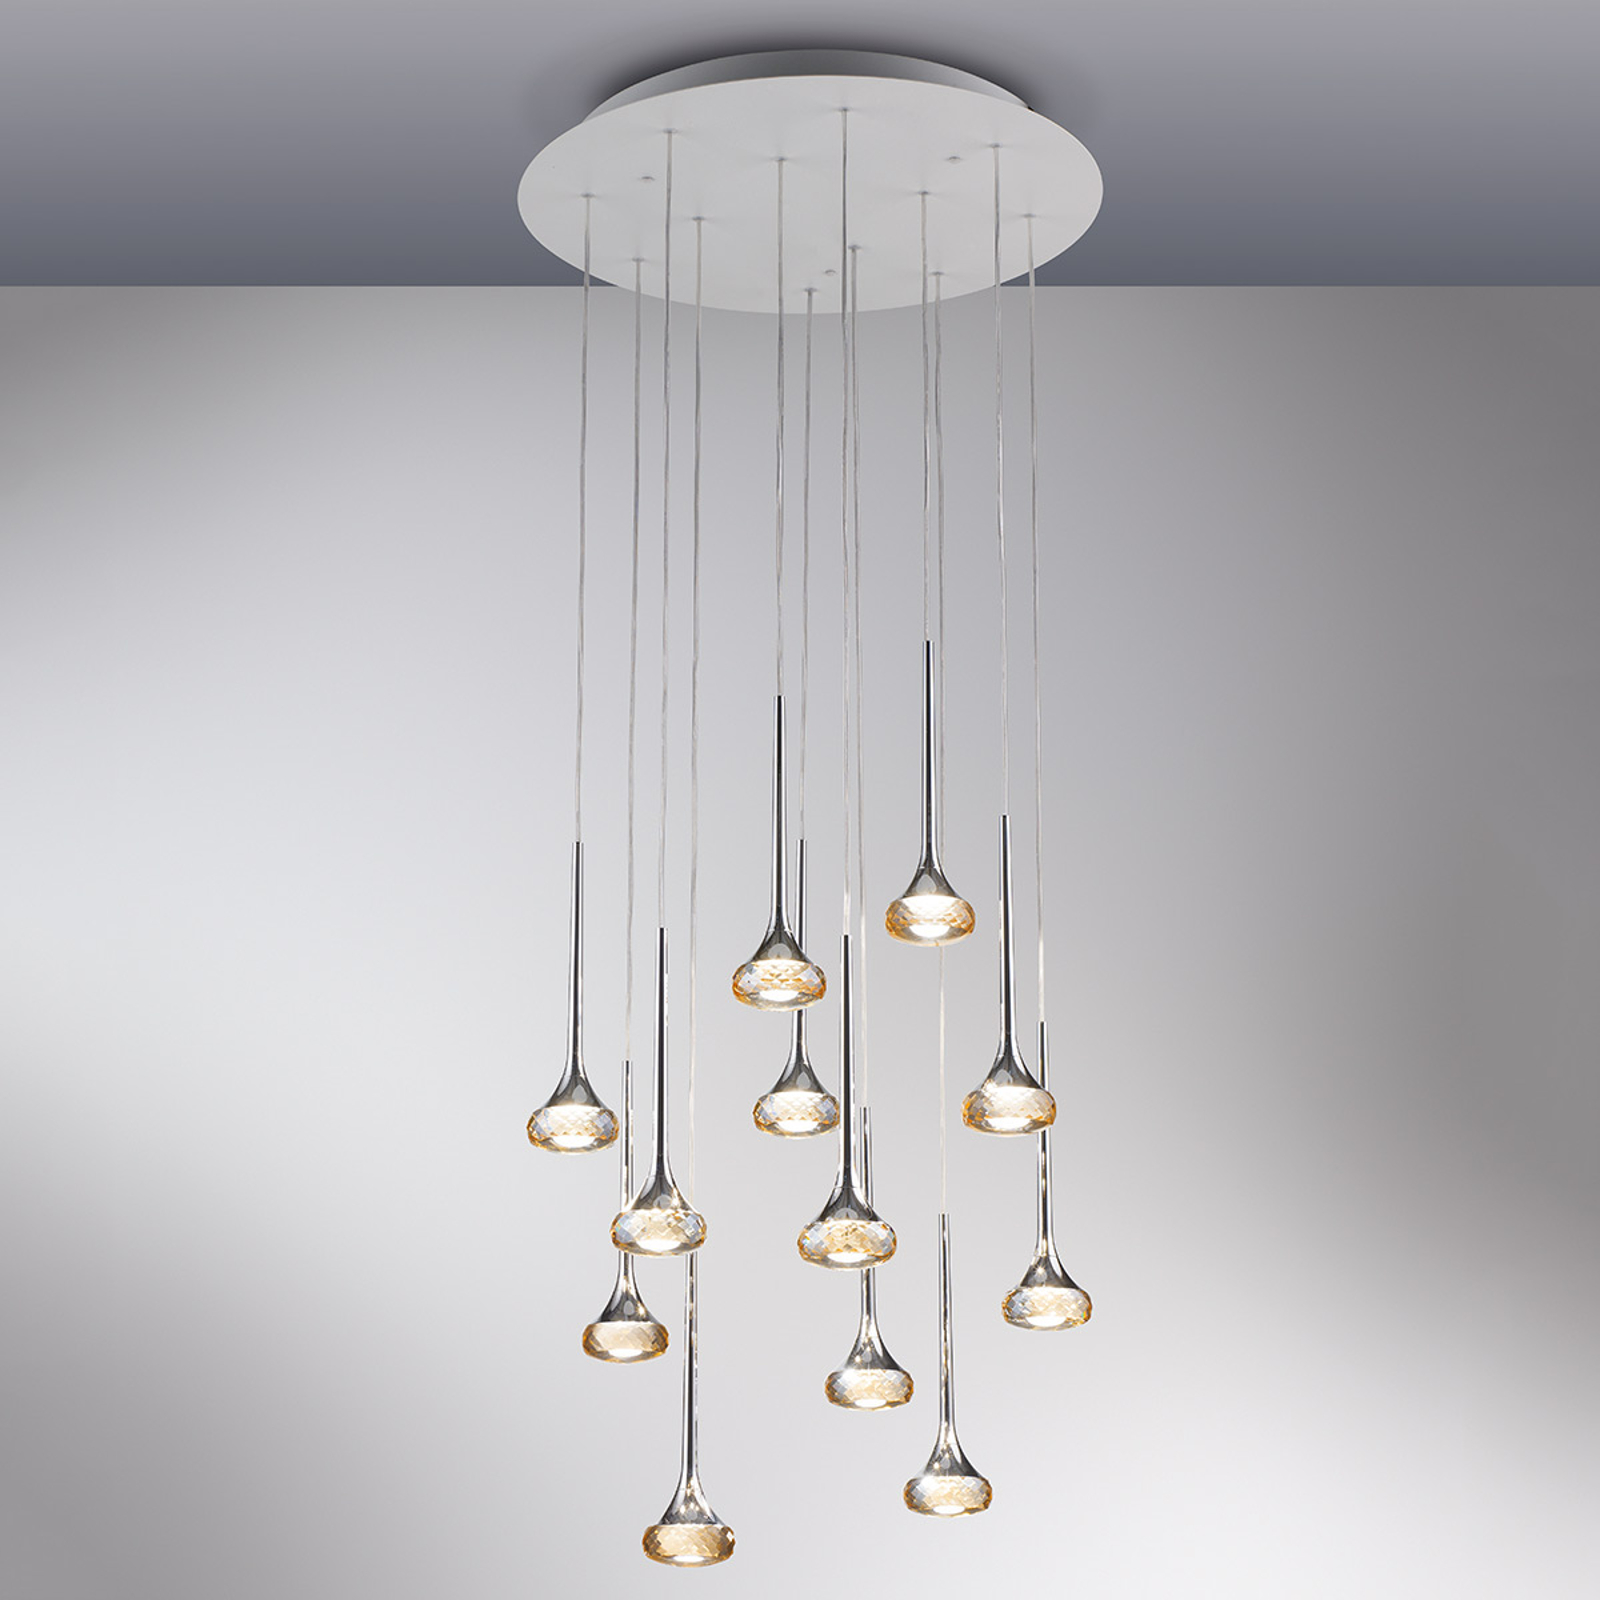 Suspension LED à 12 lampes Fairy, ambre